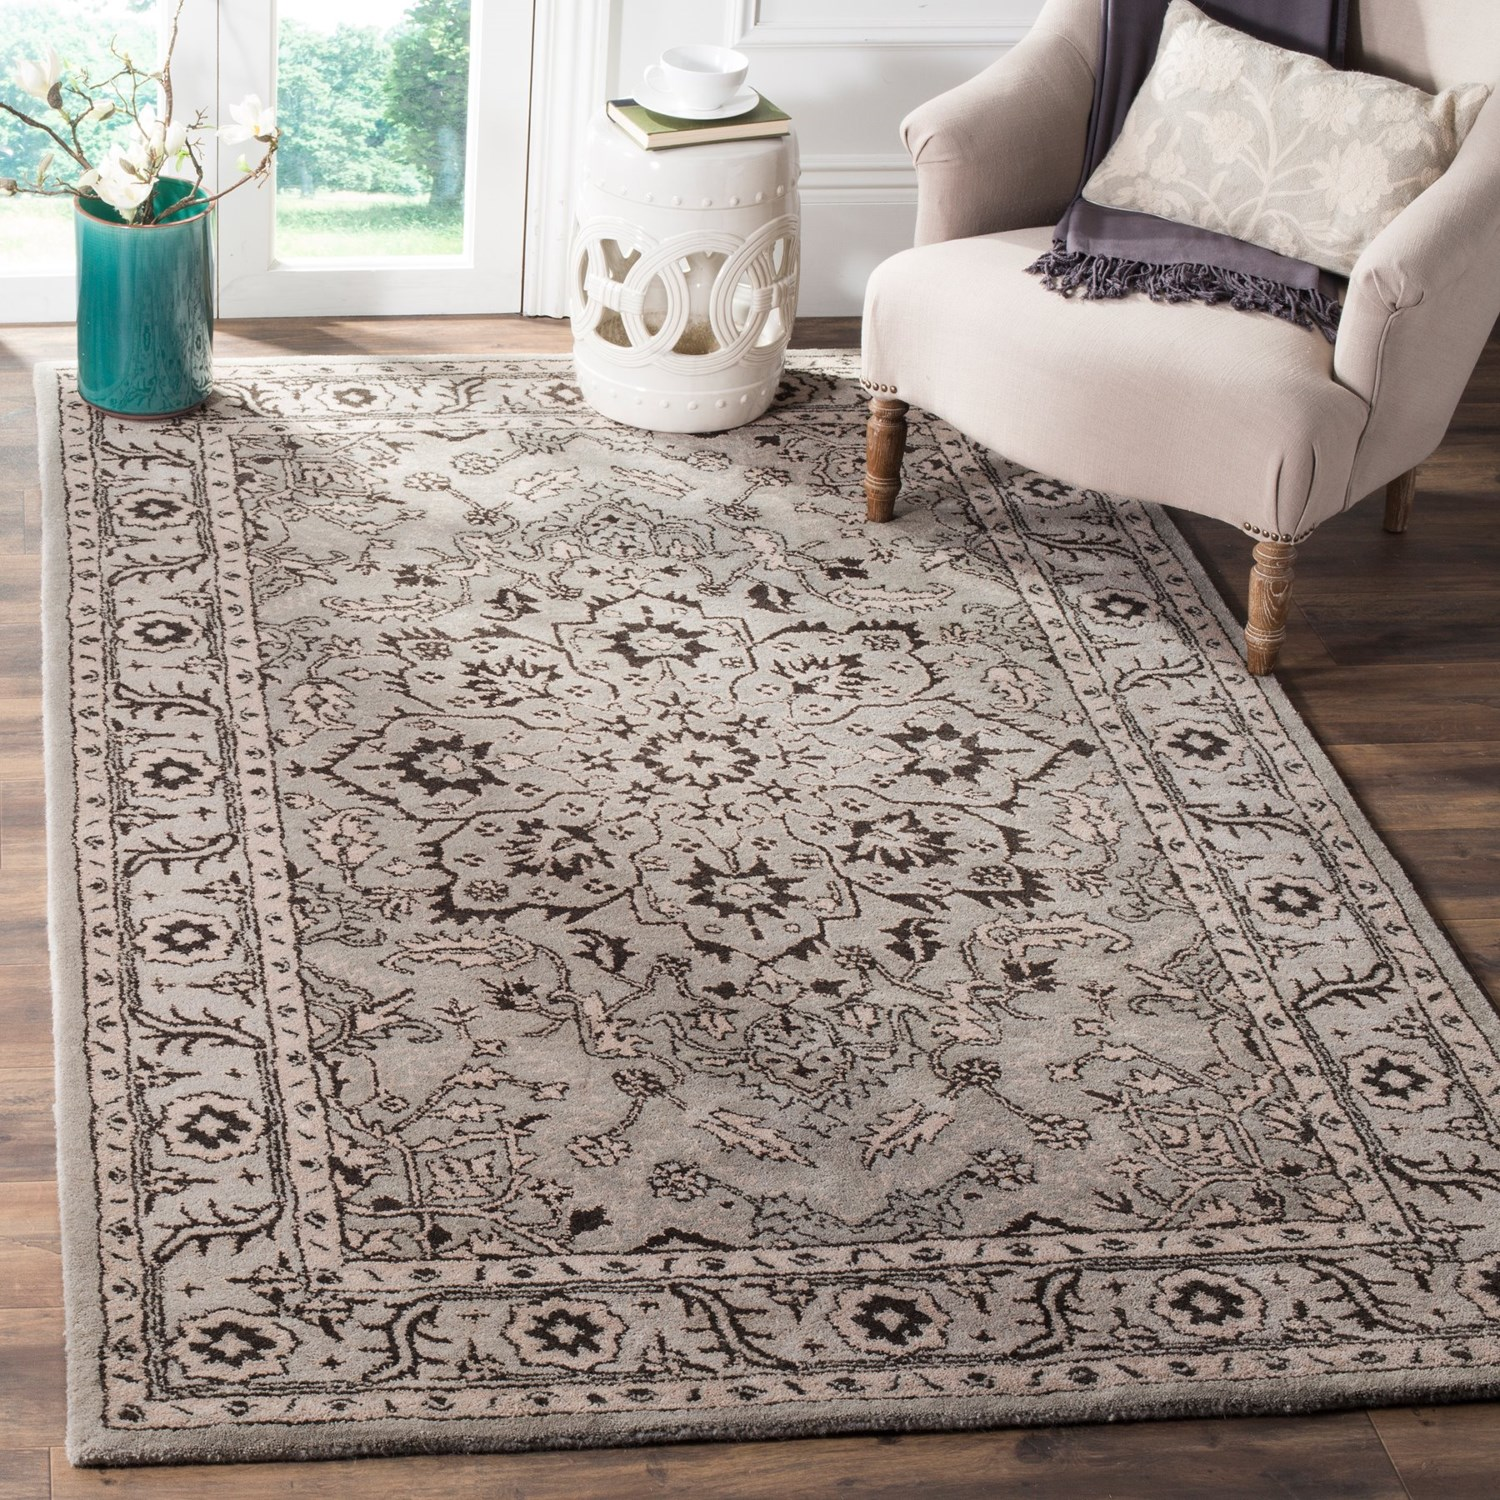 Safavieh antiquity collection grey and beige area rug for Grey and tan rug